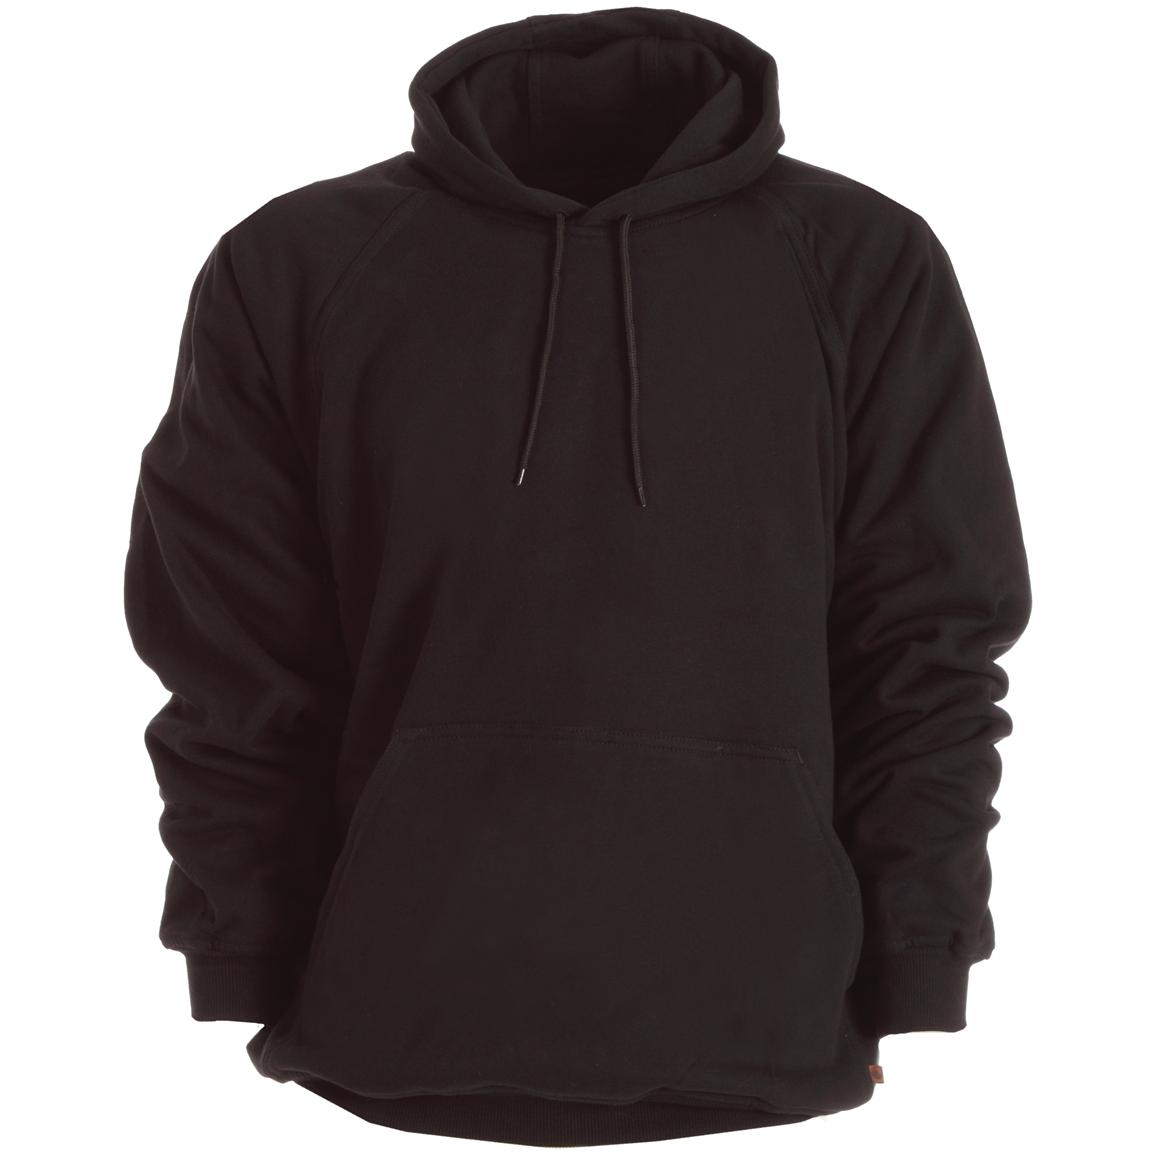 Berne Apparel® Thermal Lined Fleece Hooded Pullover, Black